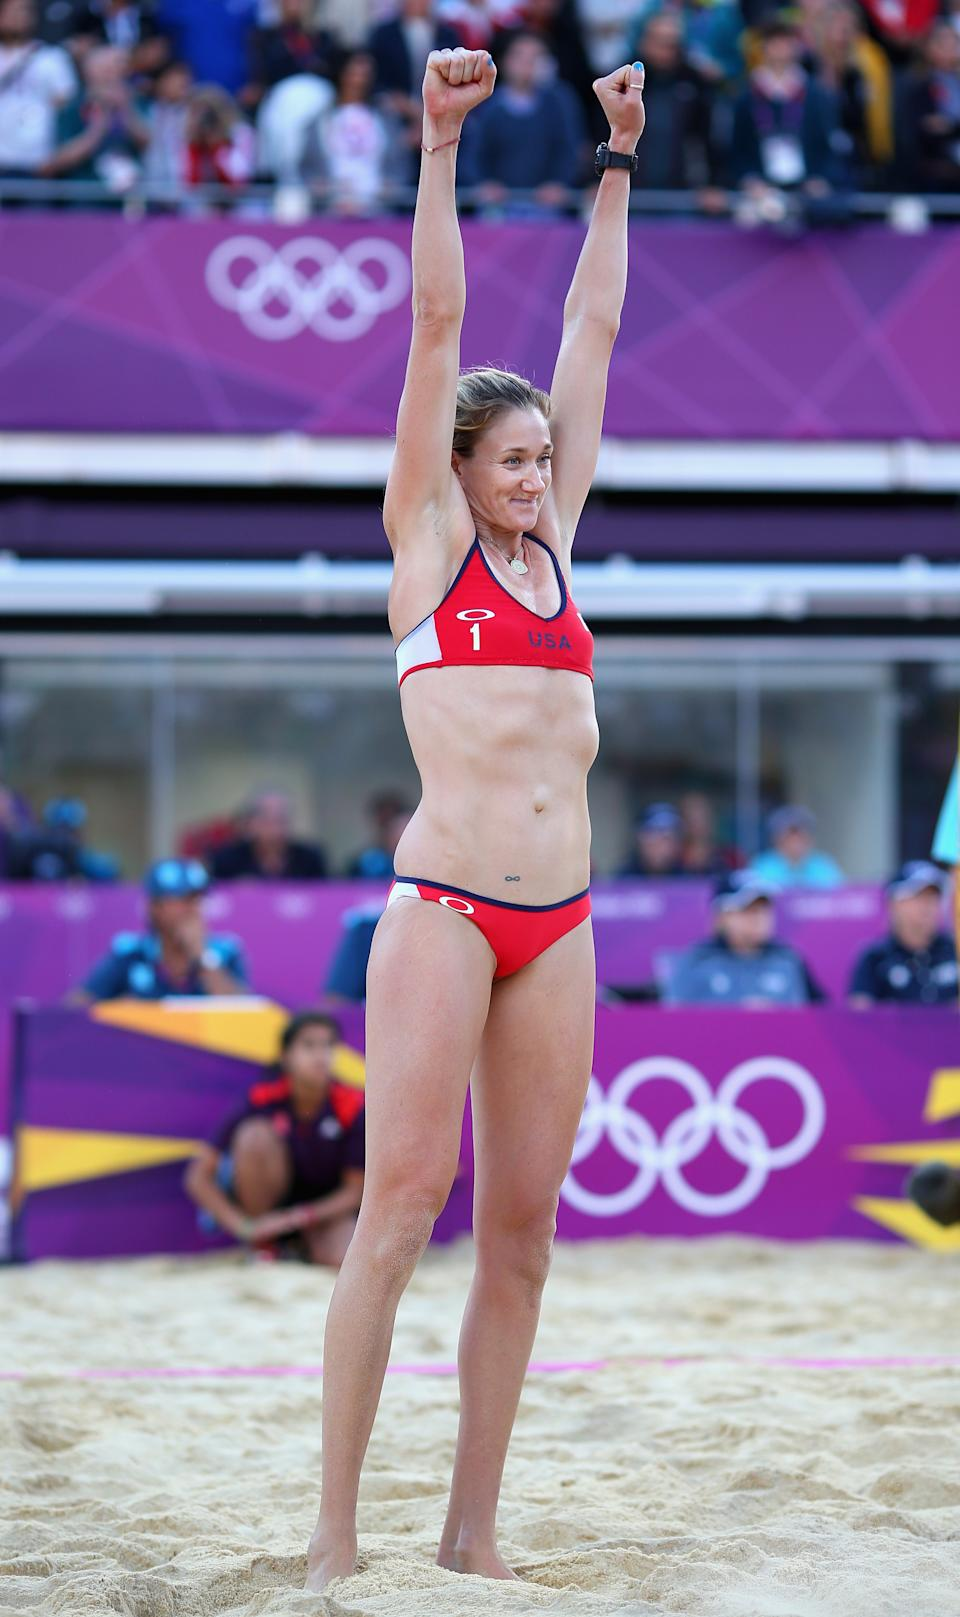 LONDON, ENGLAND - AUGUST 05: Kerri Walsh Jennings of the United States celebrates after winning match point during the Women's Beach Volleyball Quarter Final match between United States and Italy on Day 9 of the London 2012 Olympic Games at Horse Guards Parade on August 5, 2012 in London, England. (Photo by Ryan Pierse/Getty Images)